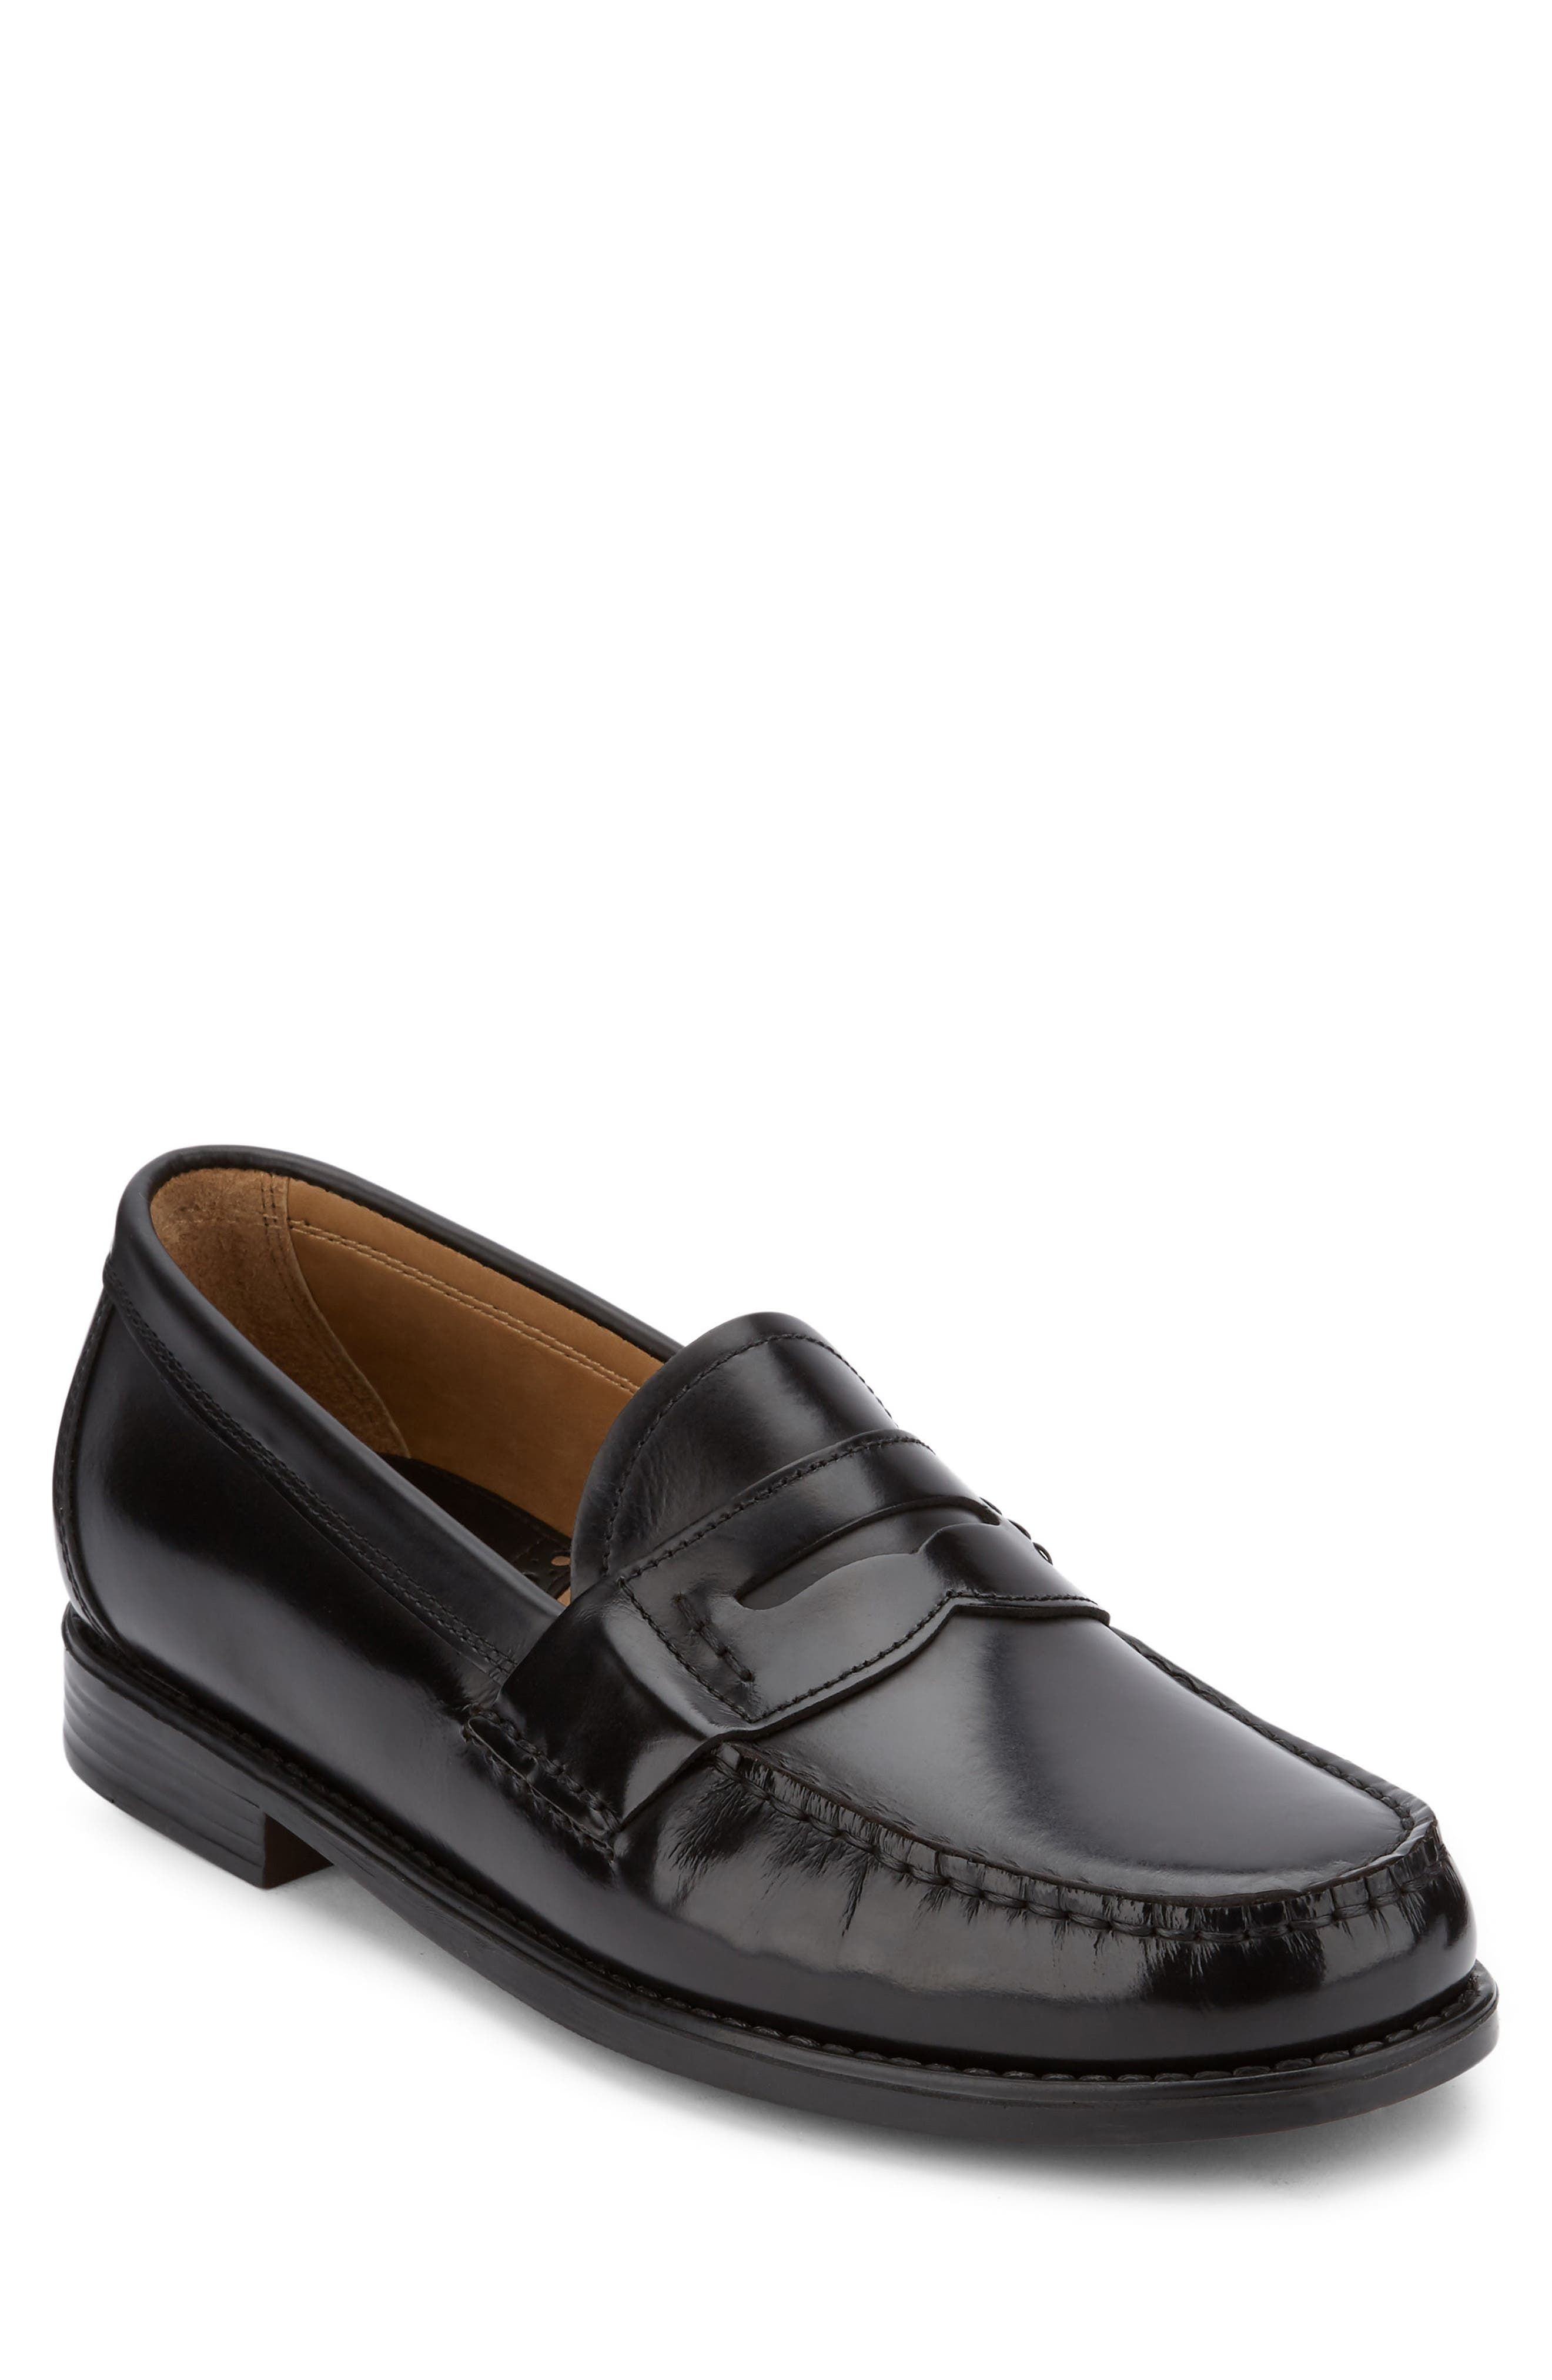 Main Image - G.H. Bass & Co. Wagner Penny Loafer (Men)